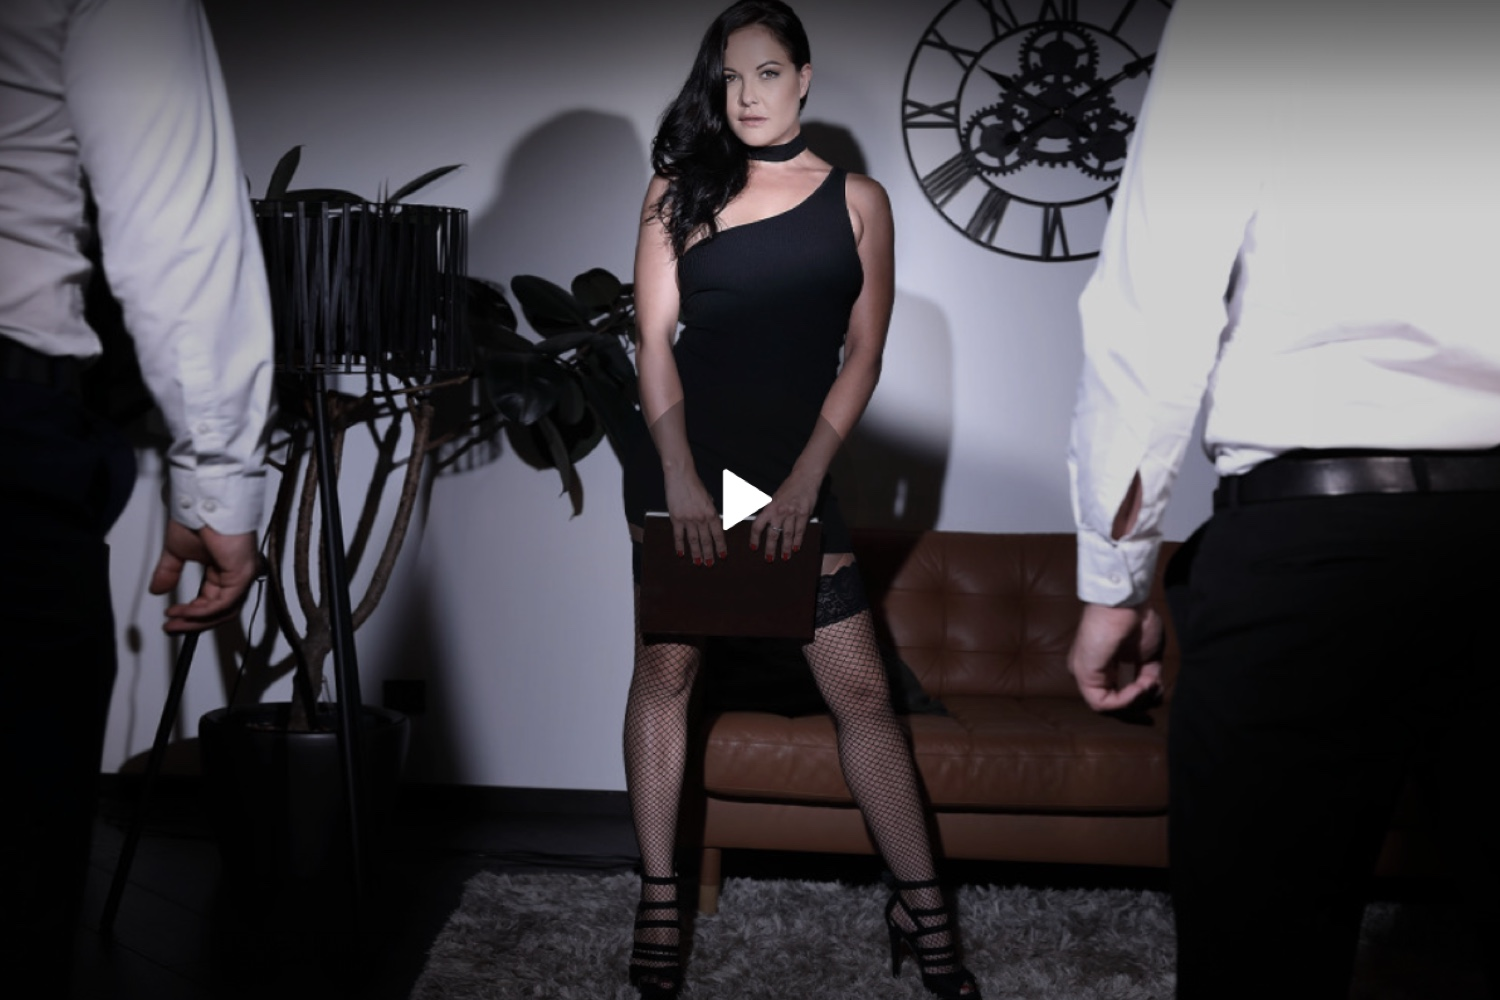 Who Is The Boss Here - Dolly Diore VR Porn - Dolly Diore Virtual Reality Porn - Dolly Diore Stockings